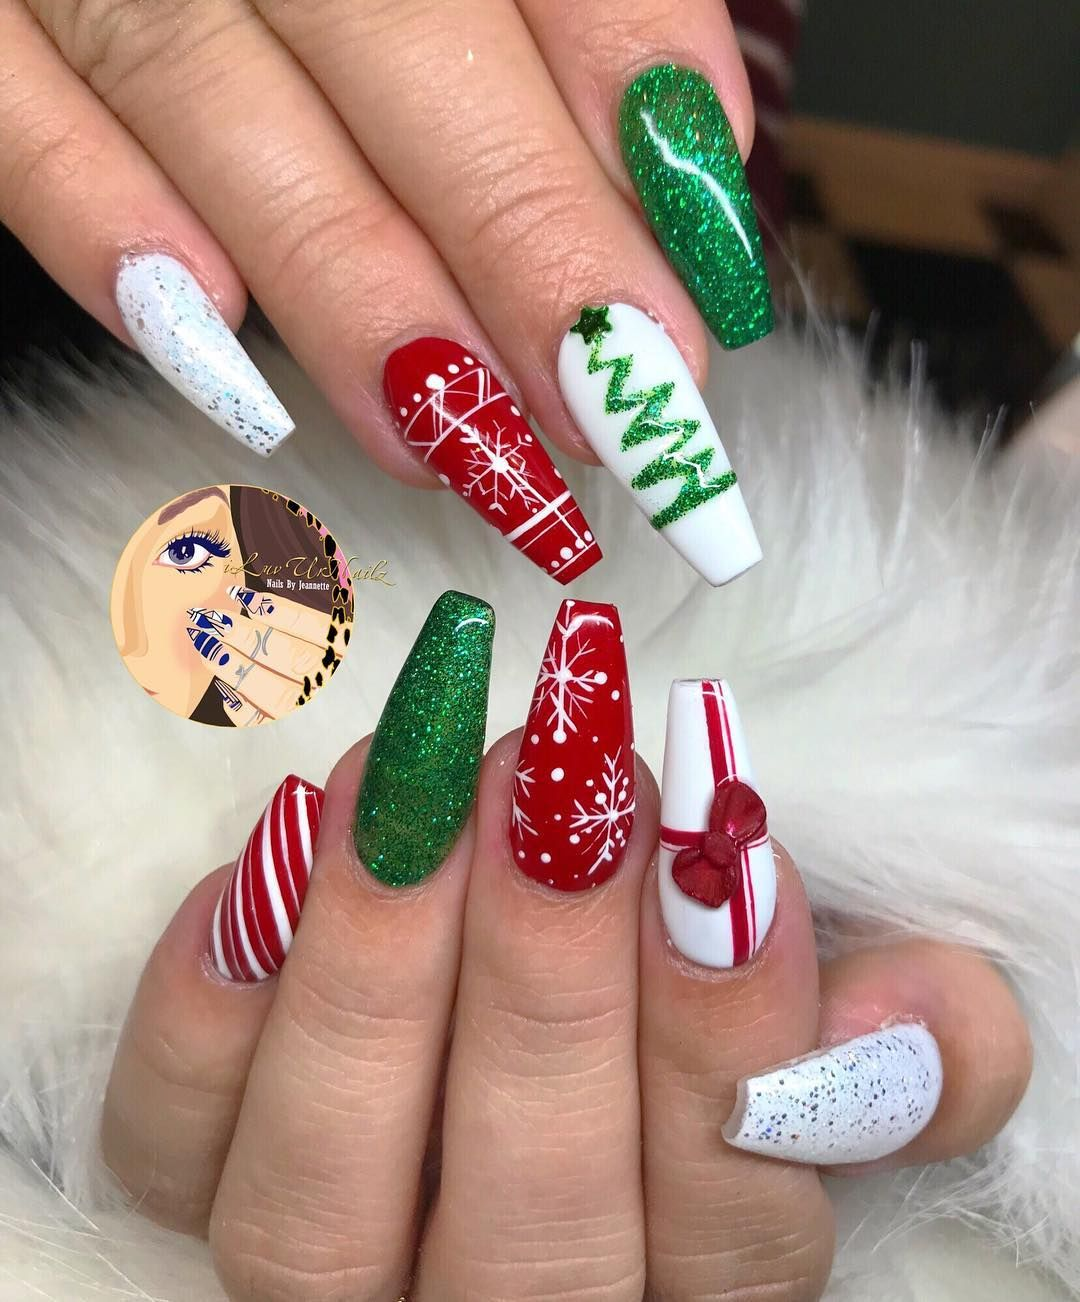 Stunning Coffin Shaped Green and Red Christmas Nails!